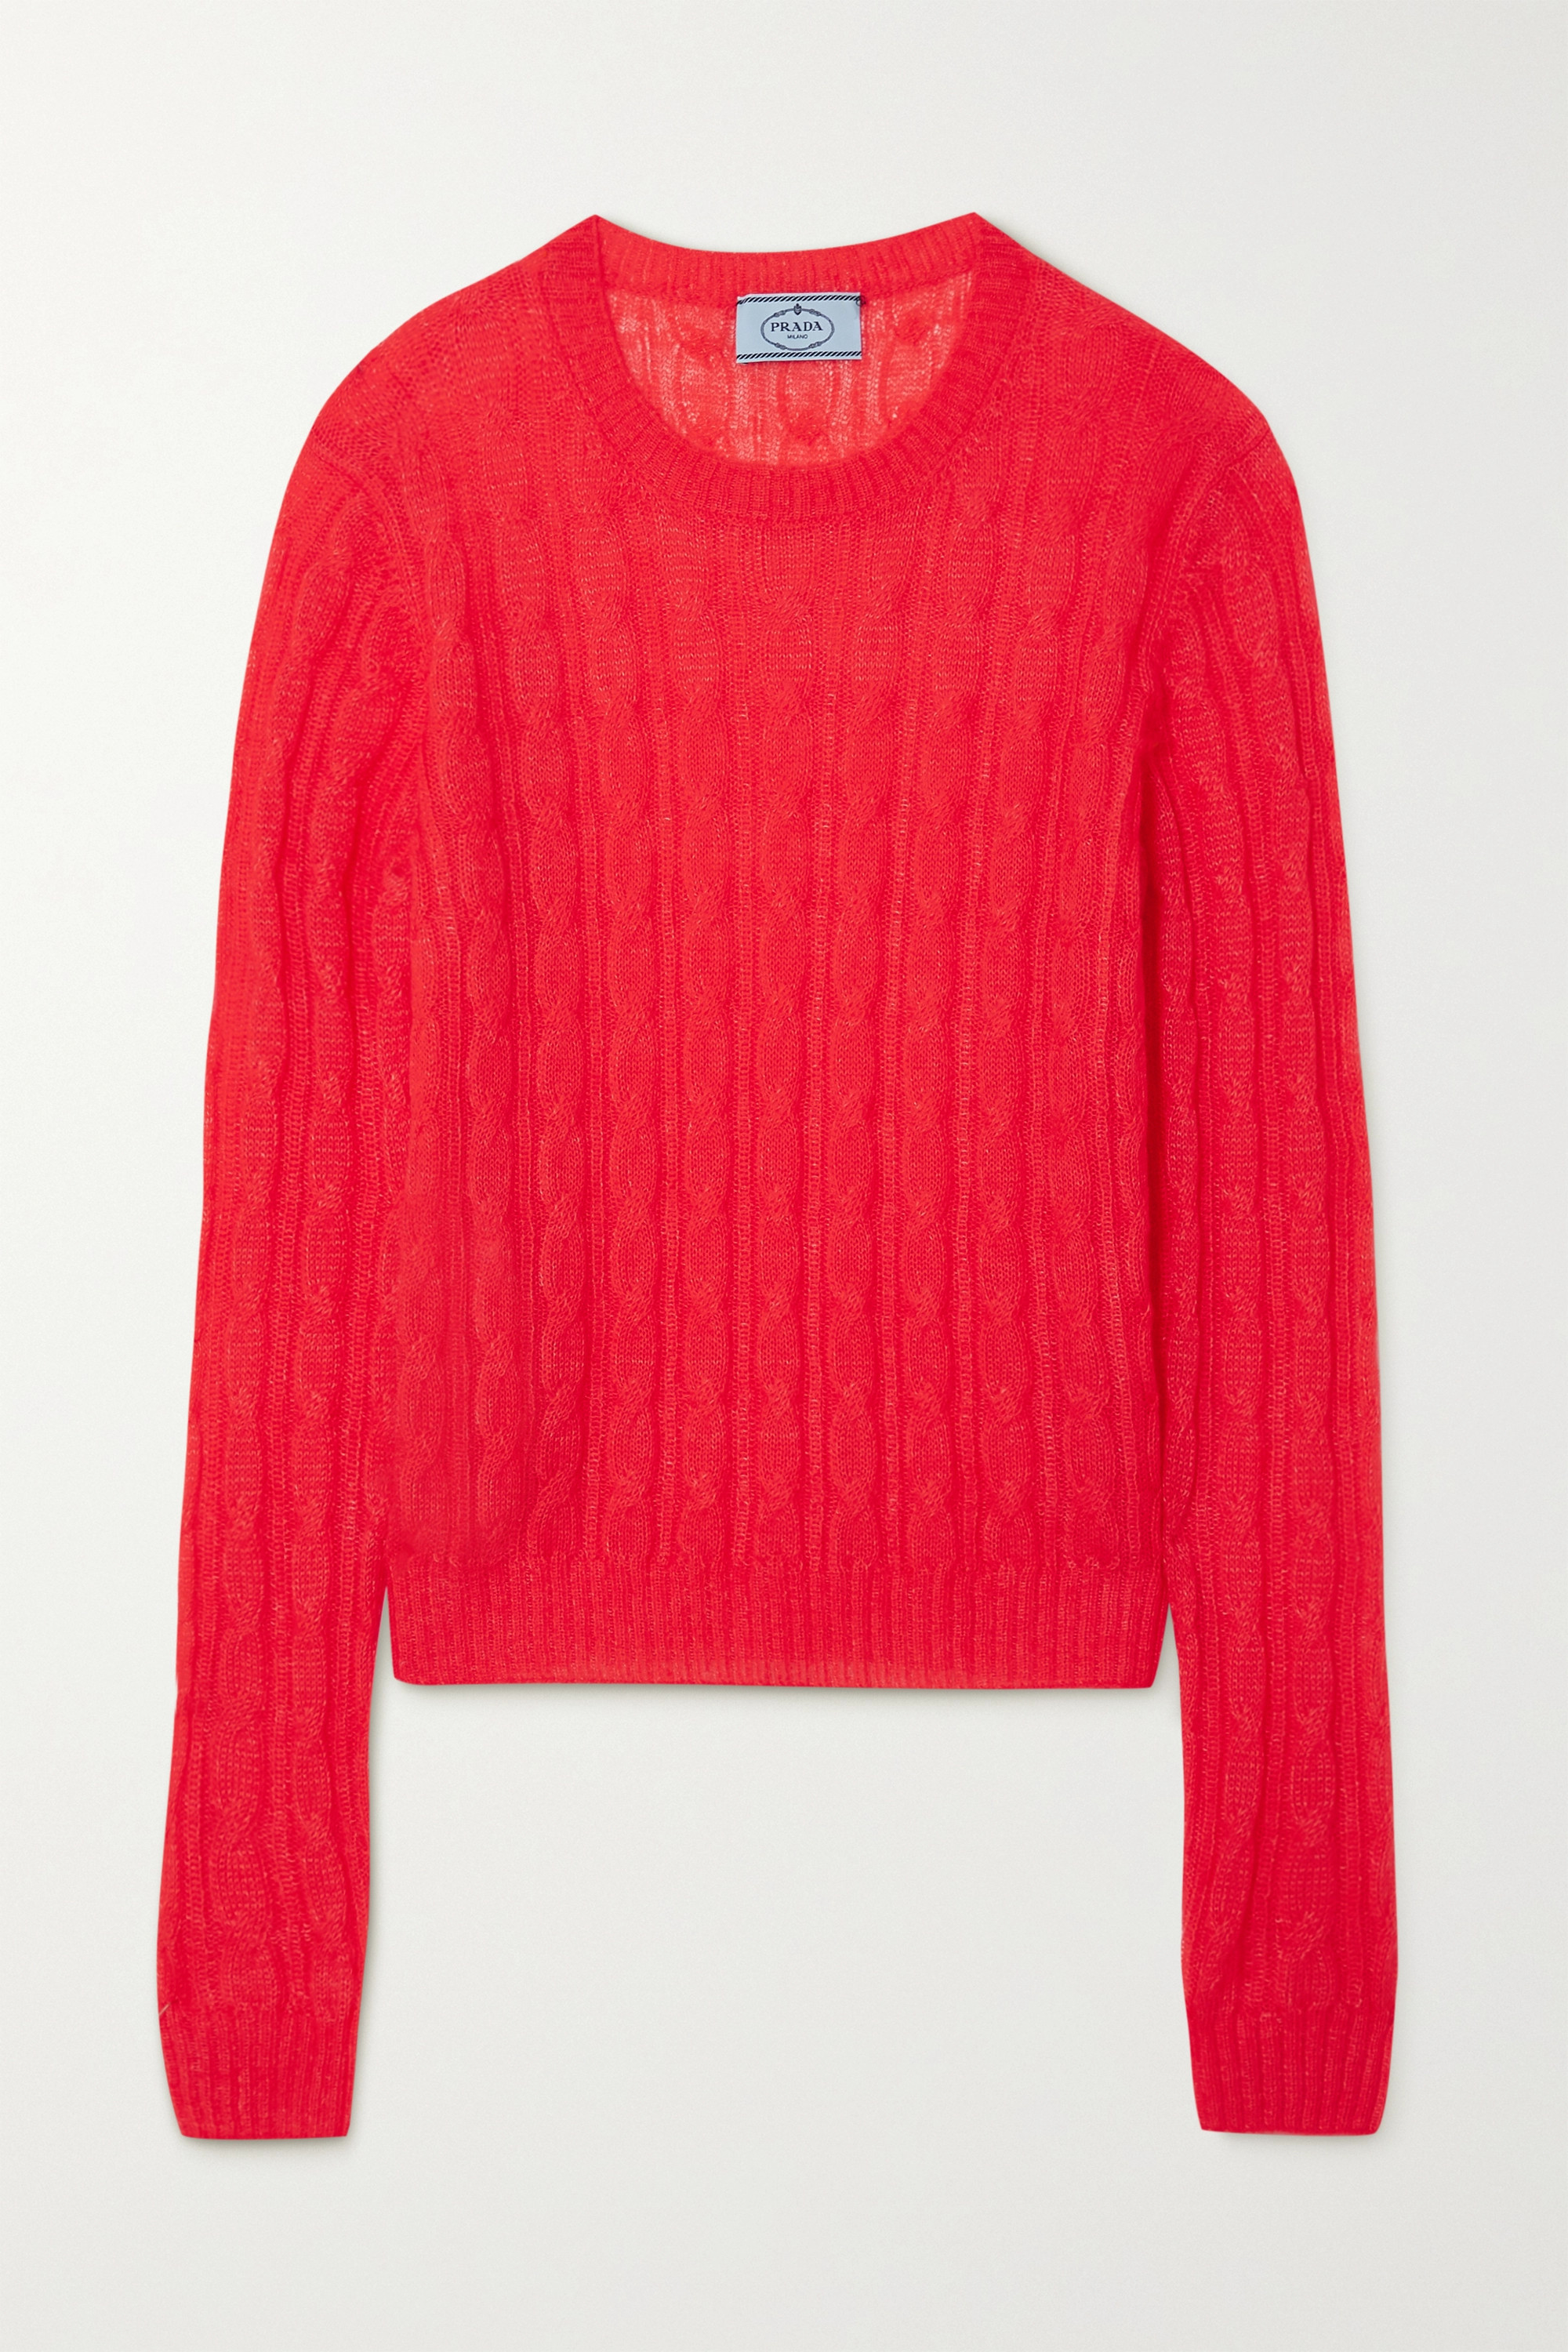 Prada Cable-knit sweater